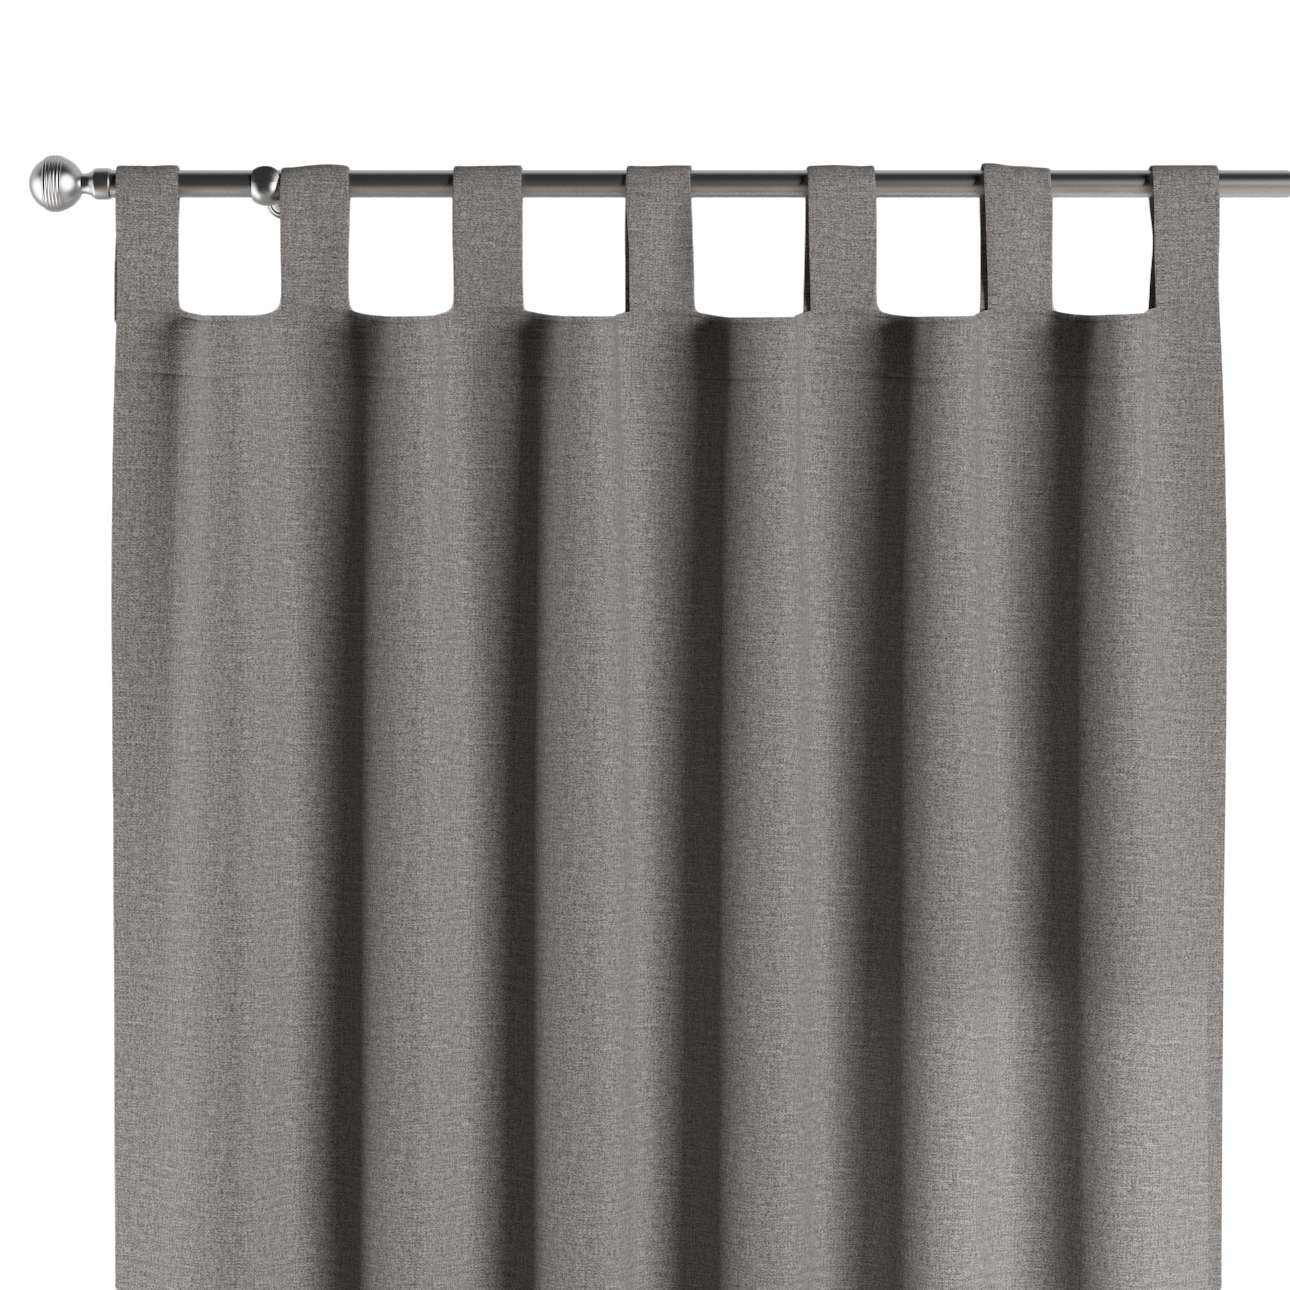 Tab top curtains 130 x 260 cm (51 x 102 inch) in collection Edinburgh, fabric: 115-81